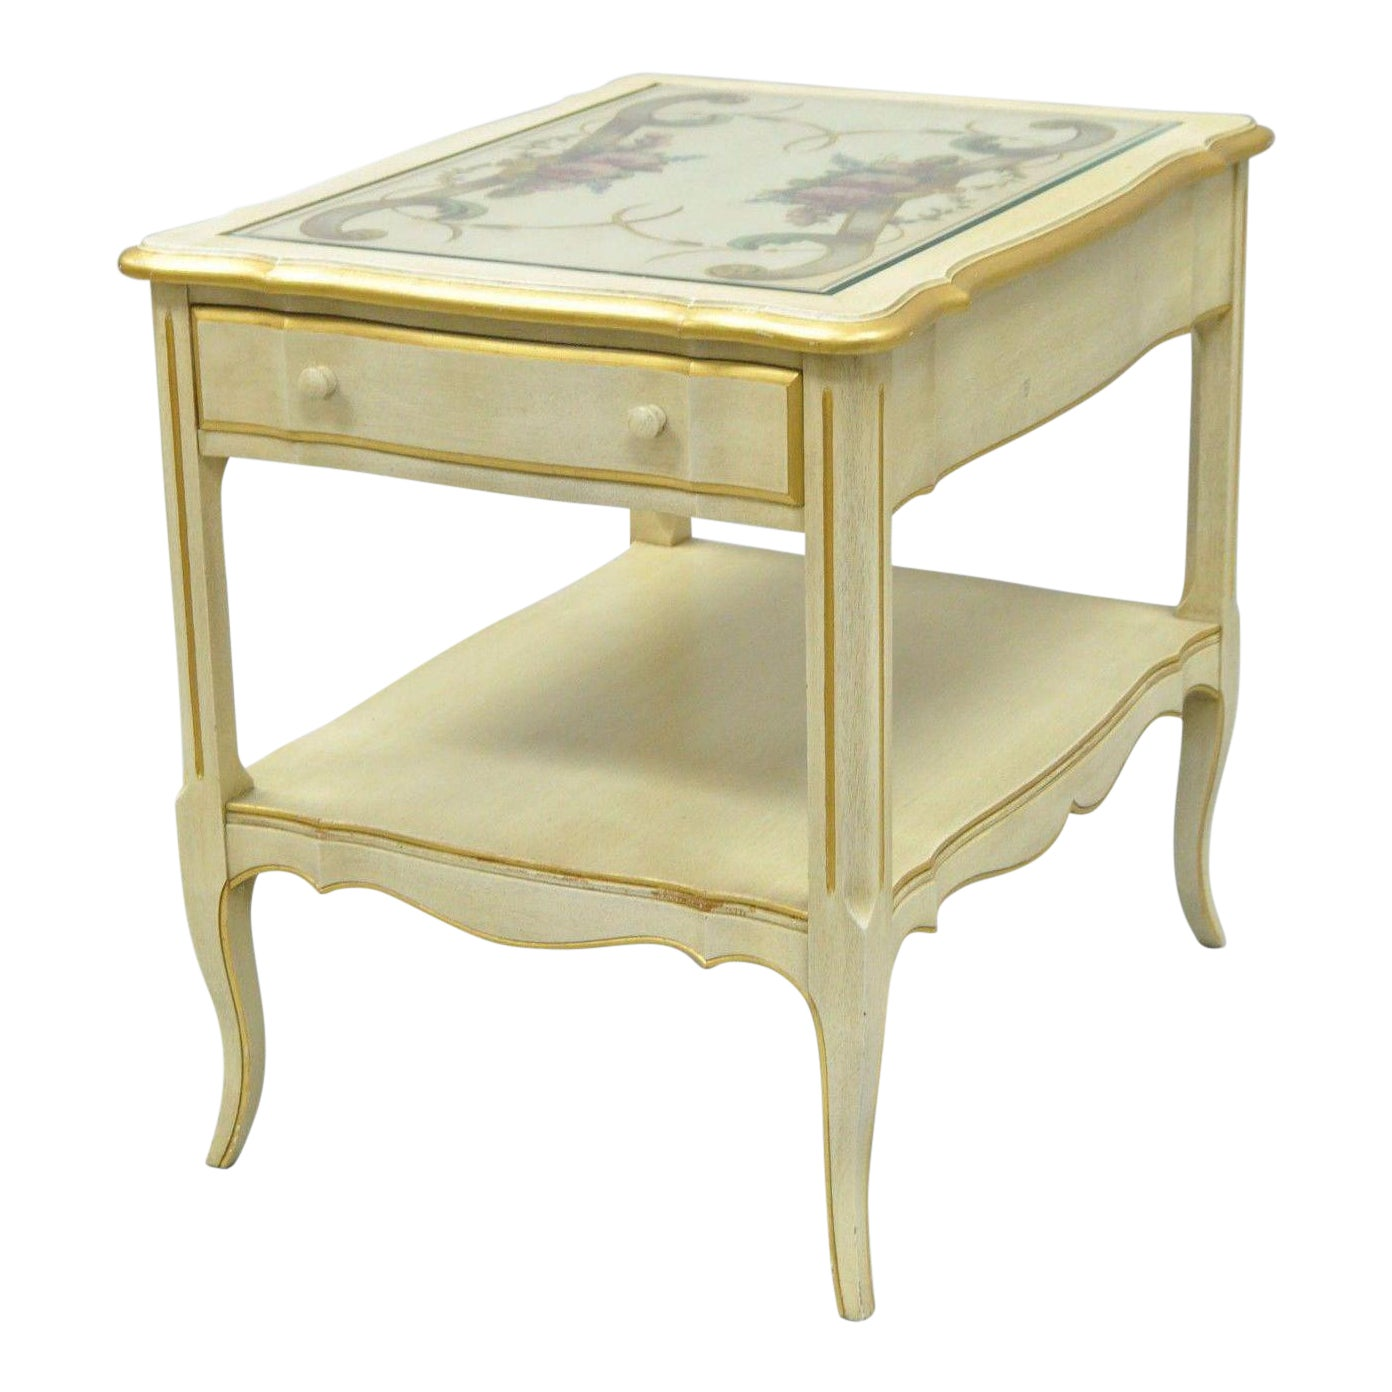 vintage french country provincial style floral painted cream drawer end table tables chairish dark cherry wood side calendar name sears furniture sofa rustic wheels ashley queen